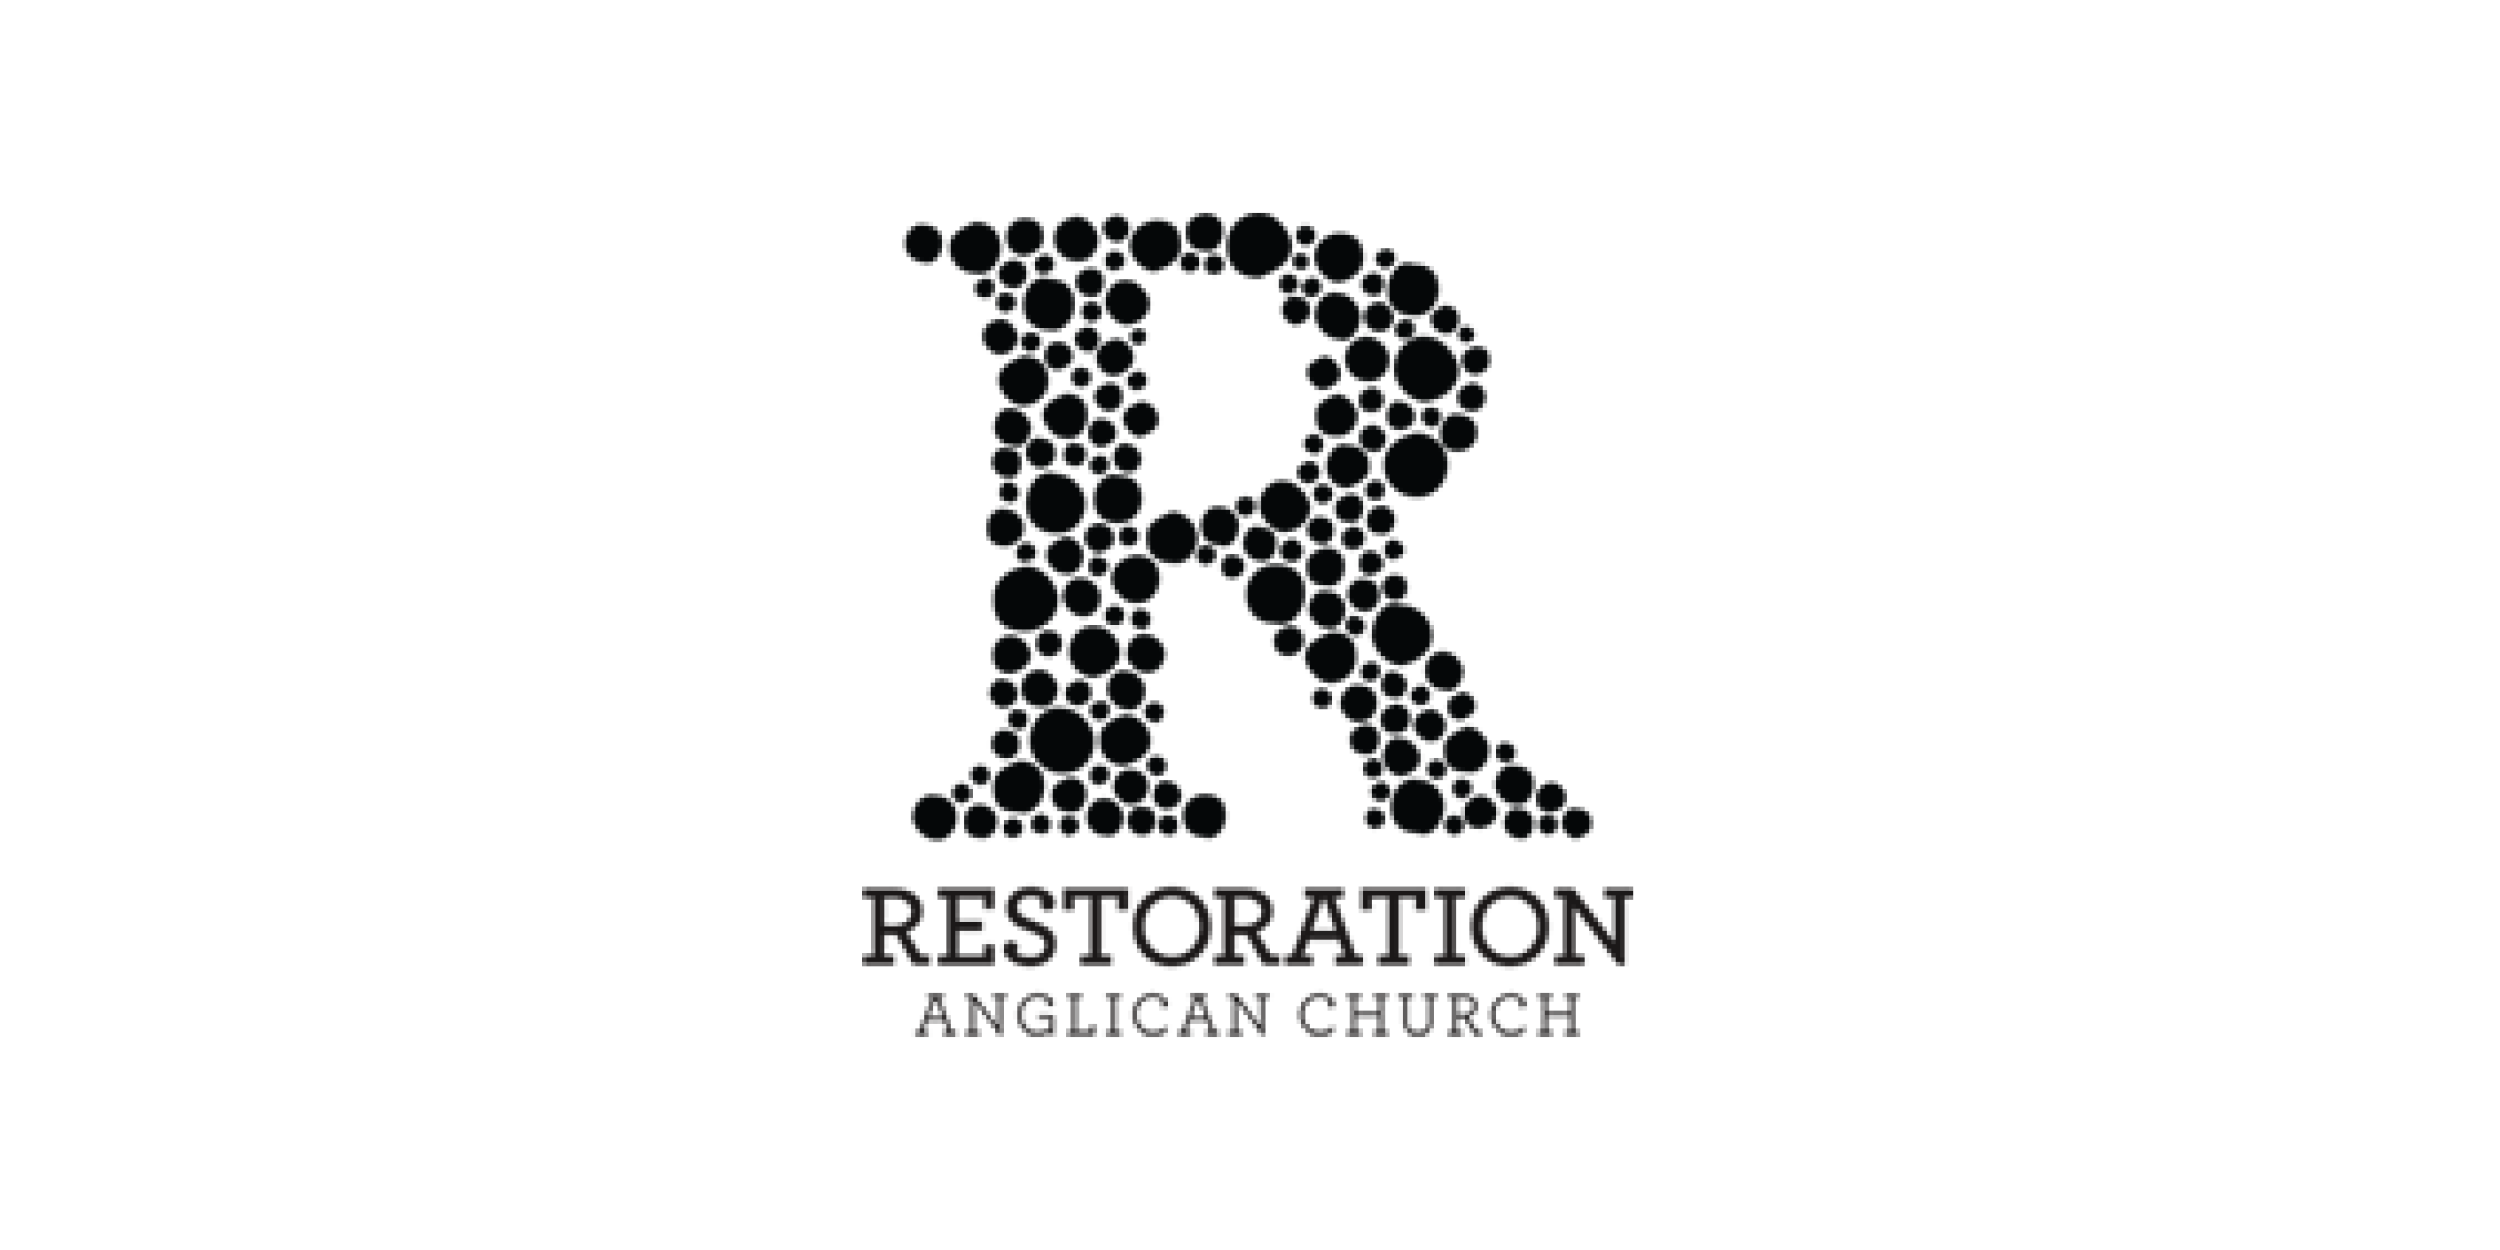 arlington-va-turley-trot-mayflower-sponsor-restoration-church.png